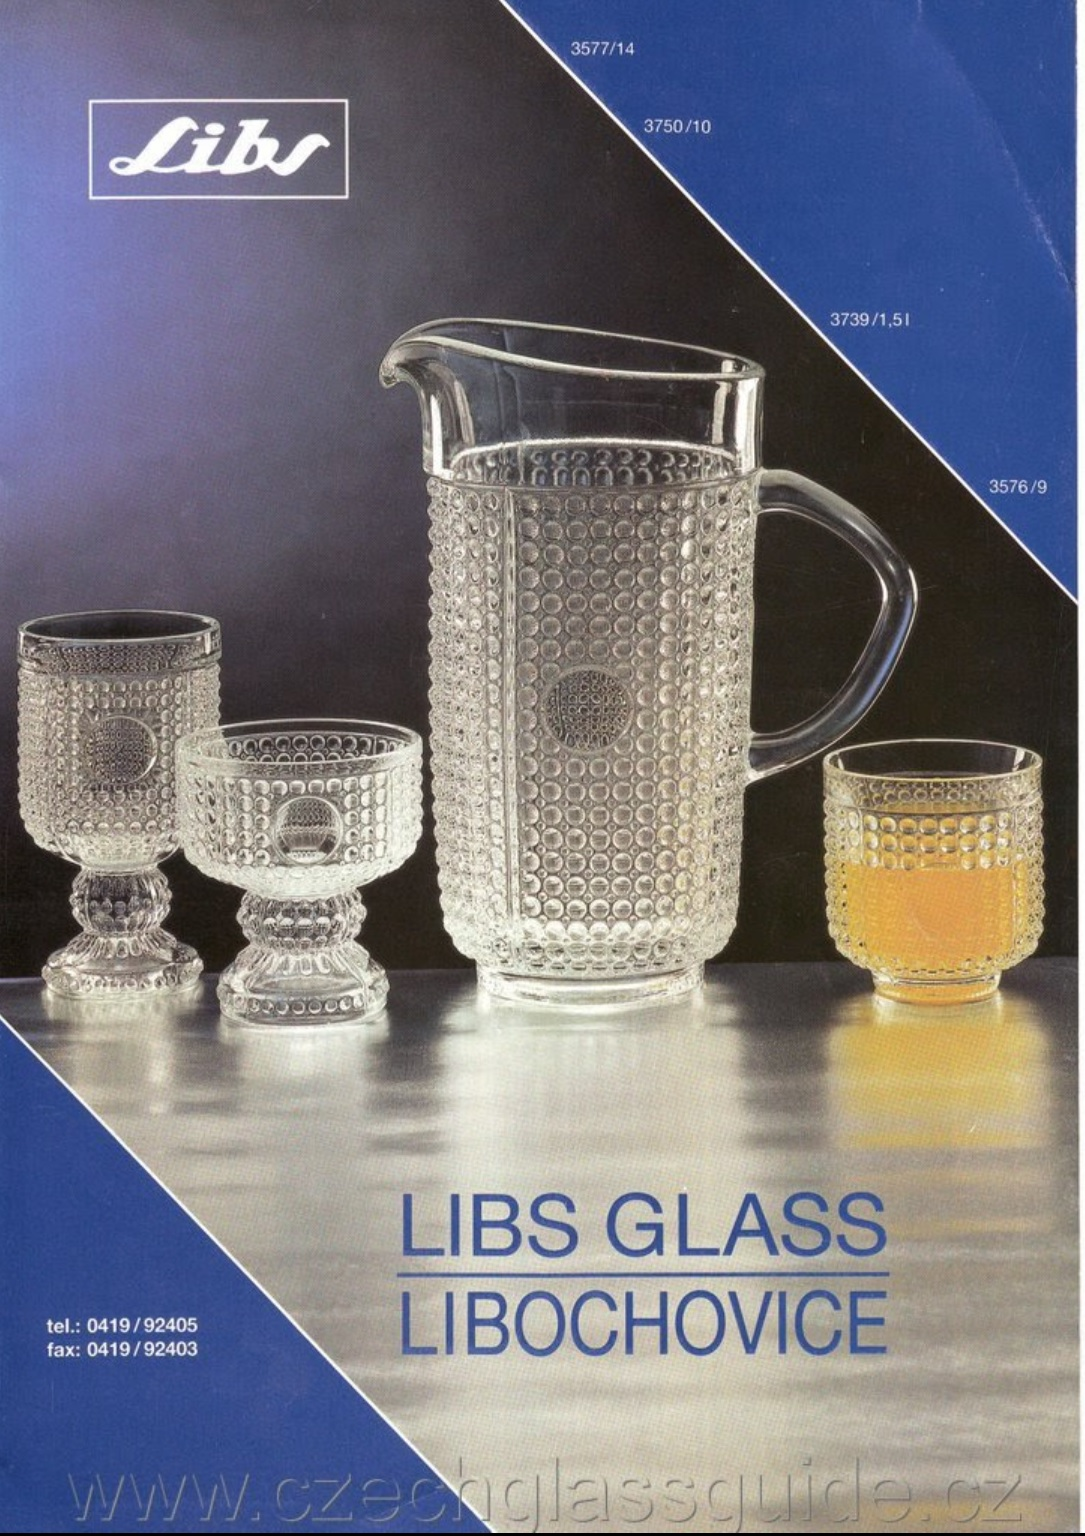 LIBS GLASS LIBOCHOVICE 1991